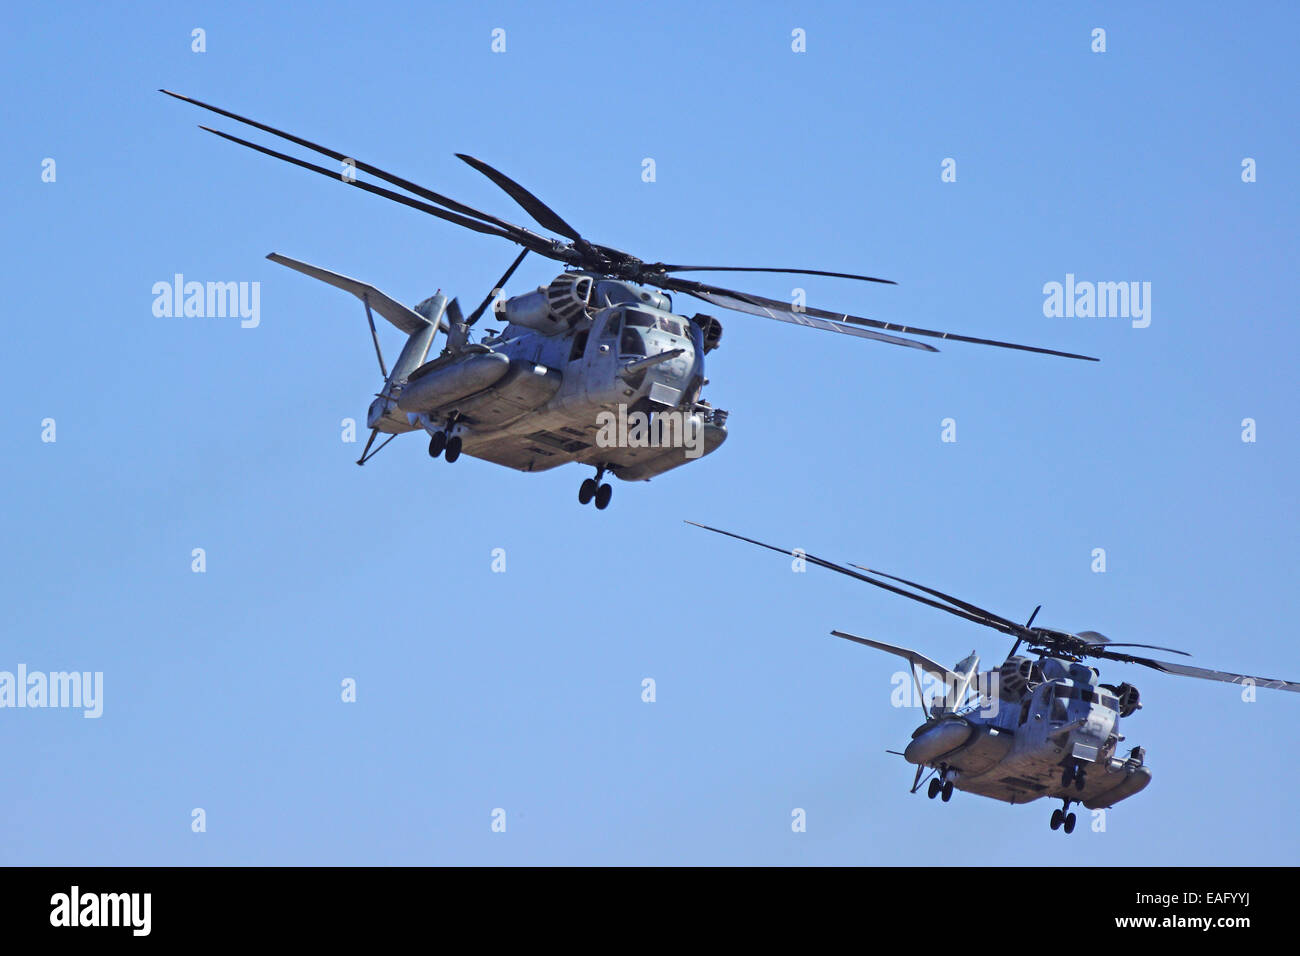 CH-53 Super Stallion Helicopters flying at the 2014 Miramar Air Show - Stock Image